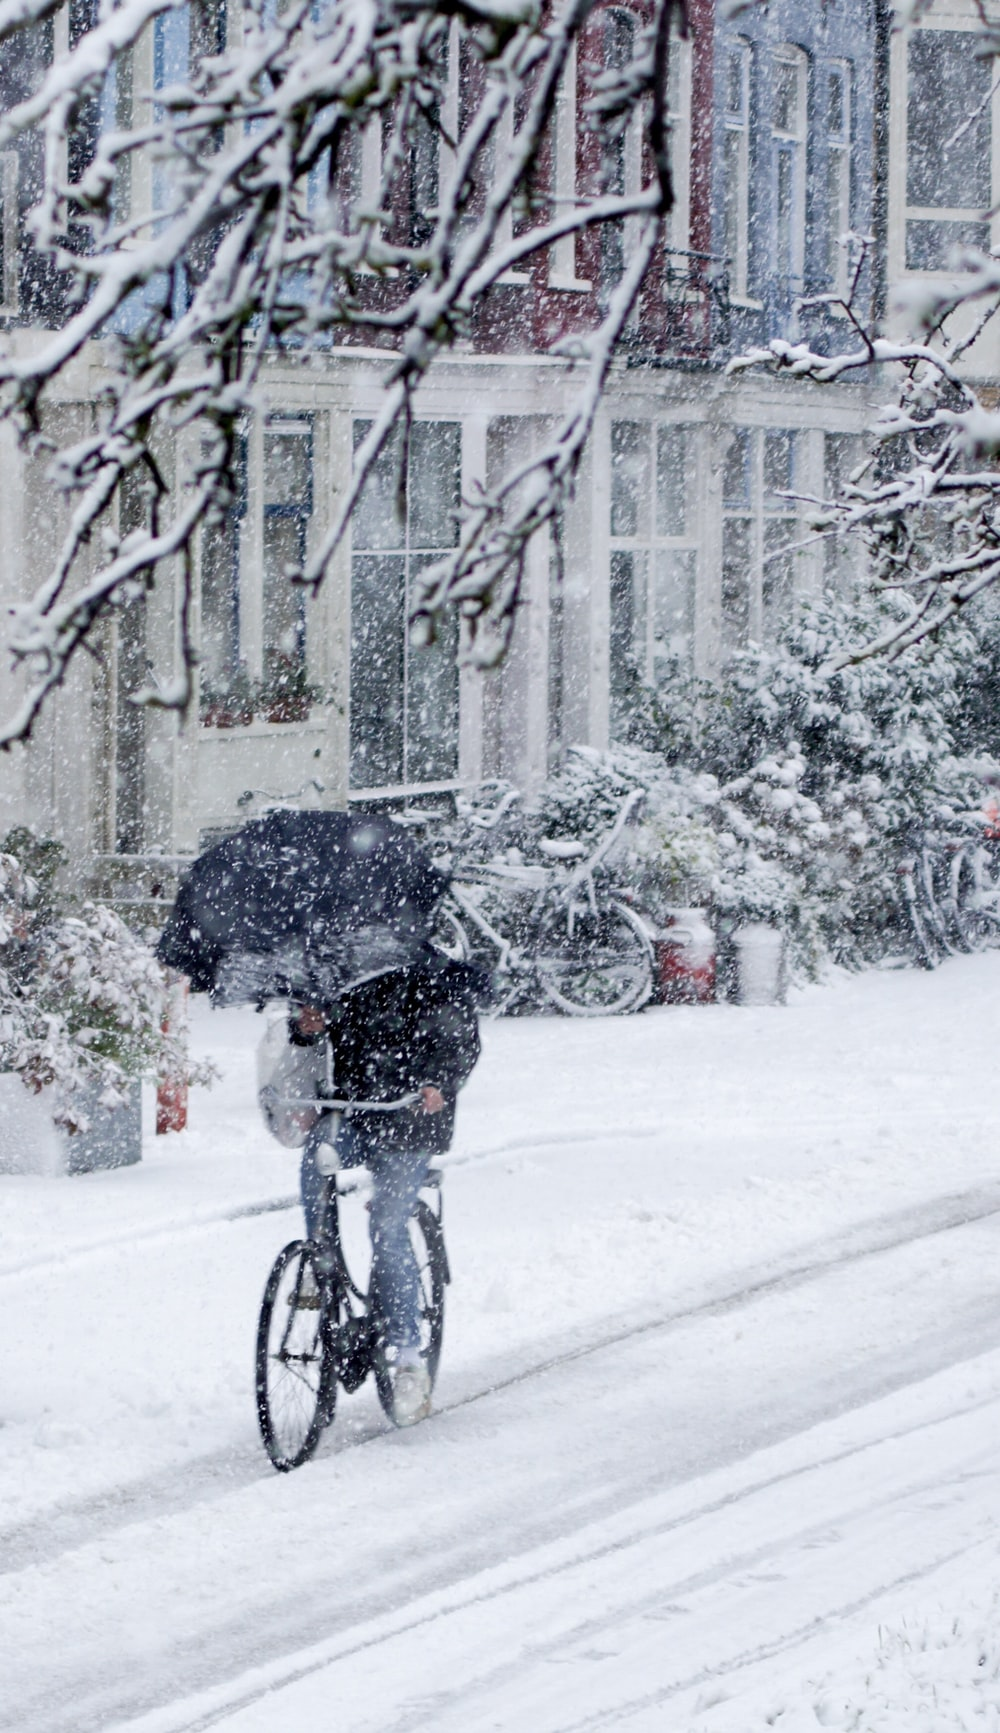 person in black jacket driving bicycle holding black umbrella under snowy weather